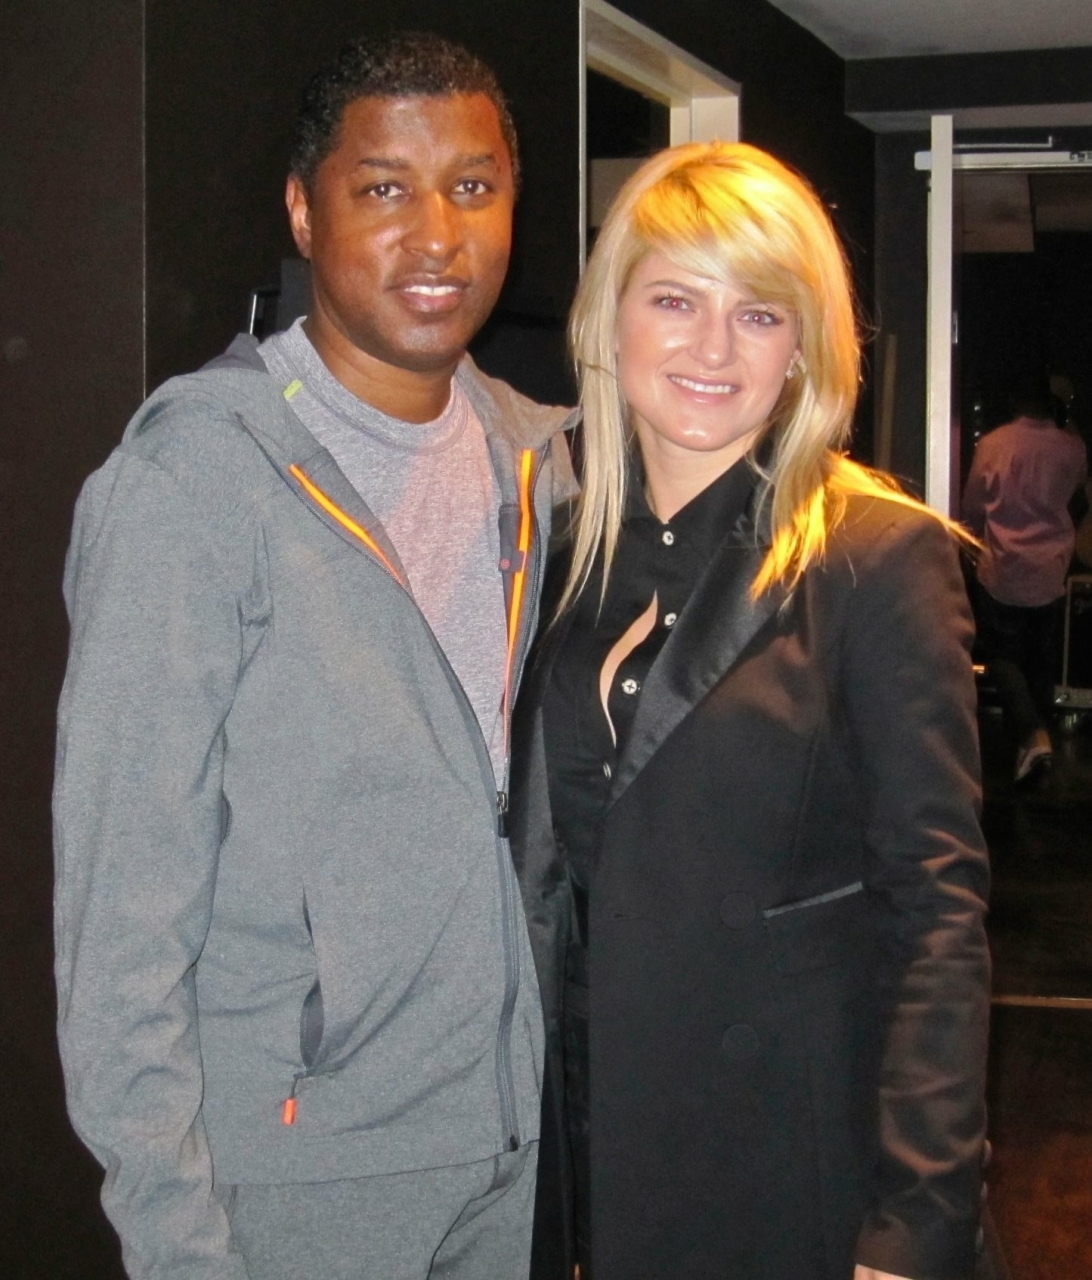 "Jackie Leigh and Babyface - Jackie Leigh and Babyface (Kenny Edmonds) at Babyface Ent. Studio ""Brandon's Way."" He has sold over 500 million records worldwide and has over 200 top 10 hits. Babyface and L.A. Reed are the 2 behind the successful record label, La Face Records. In 2009, Jackie Leigh recorded her self entitled EP at Brandon's Way Studio with Babyface's underling, Grammy winning producer,  Adonis Shropshire."